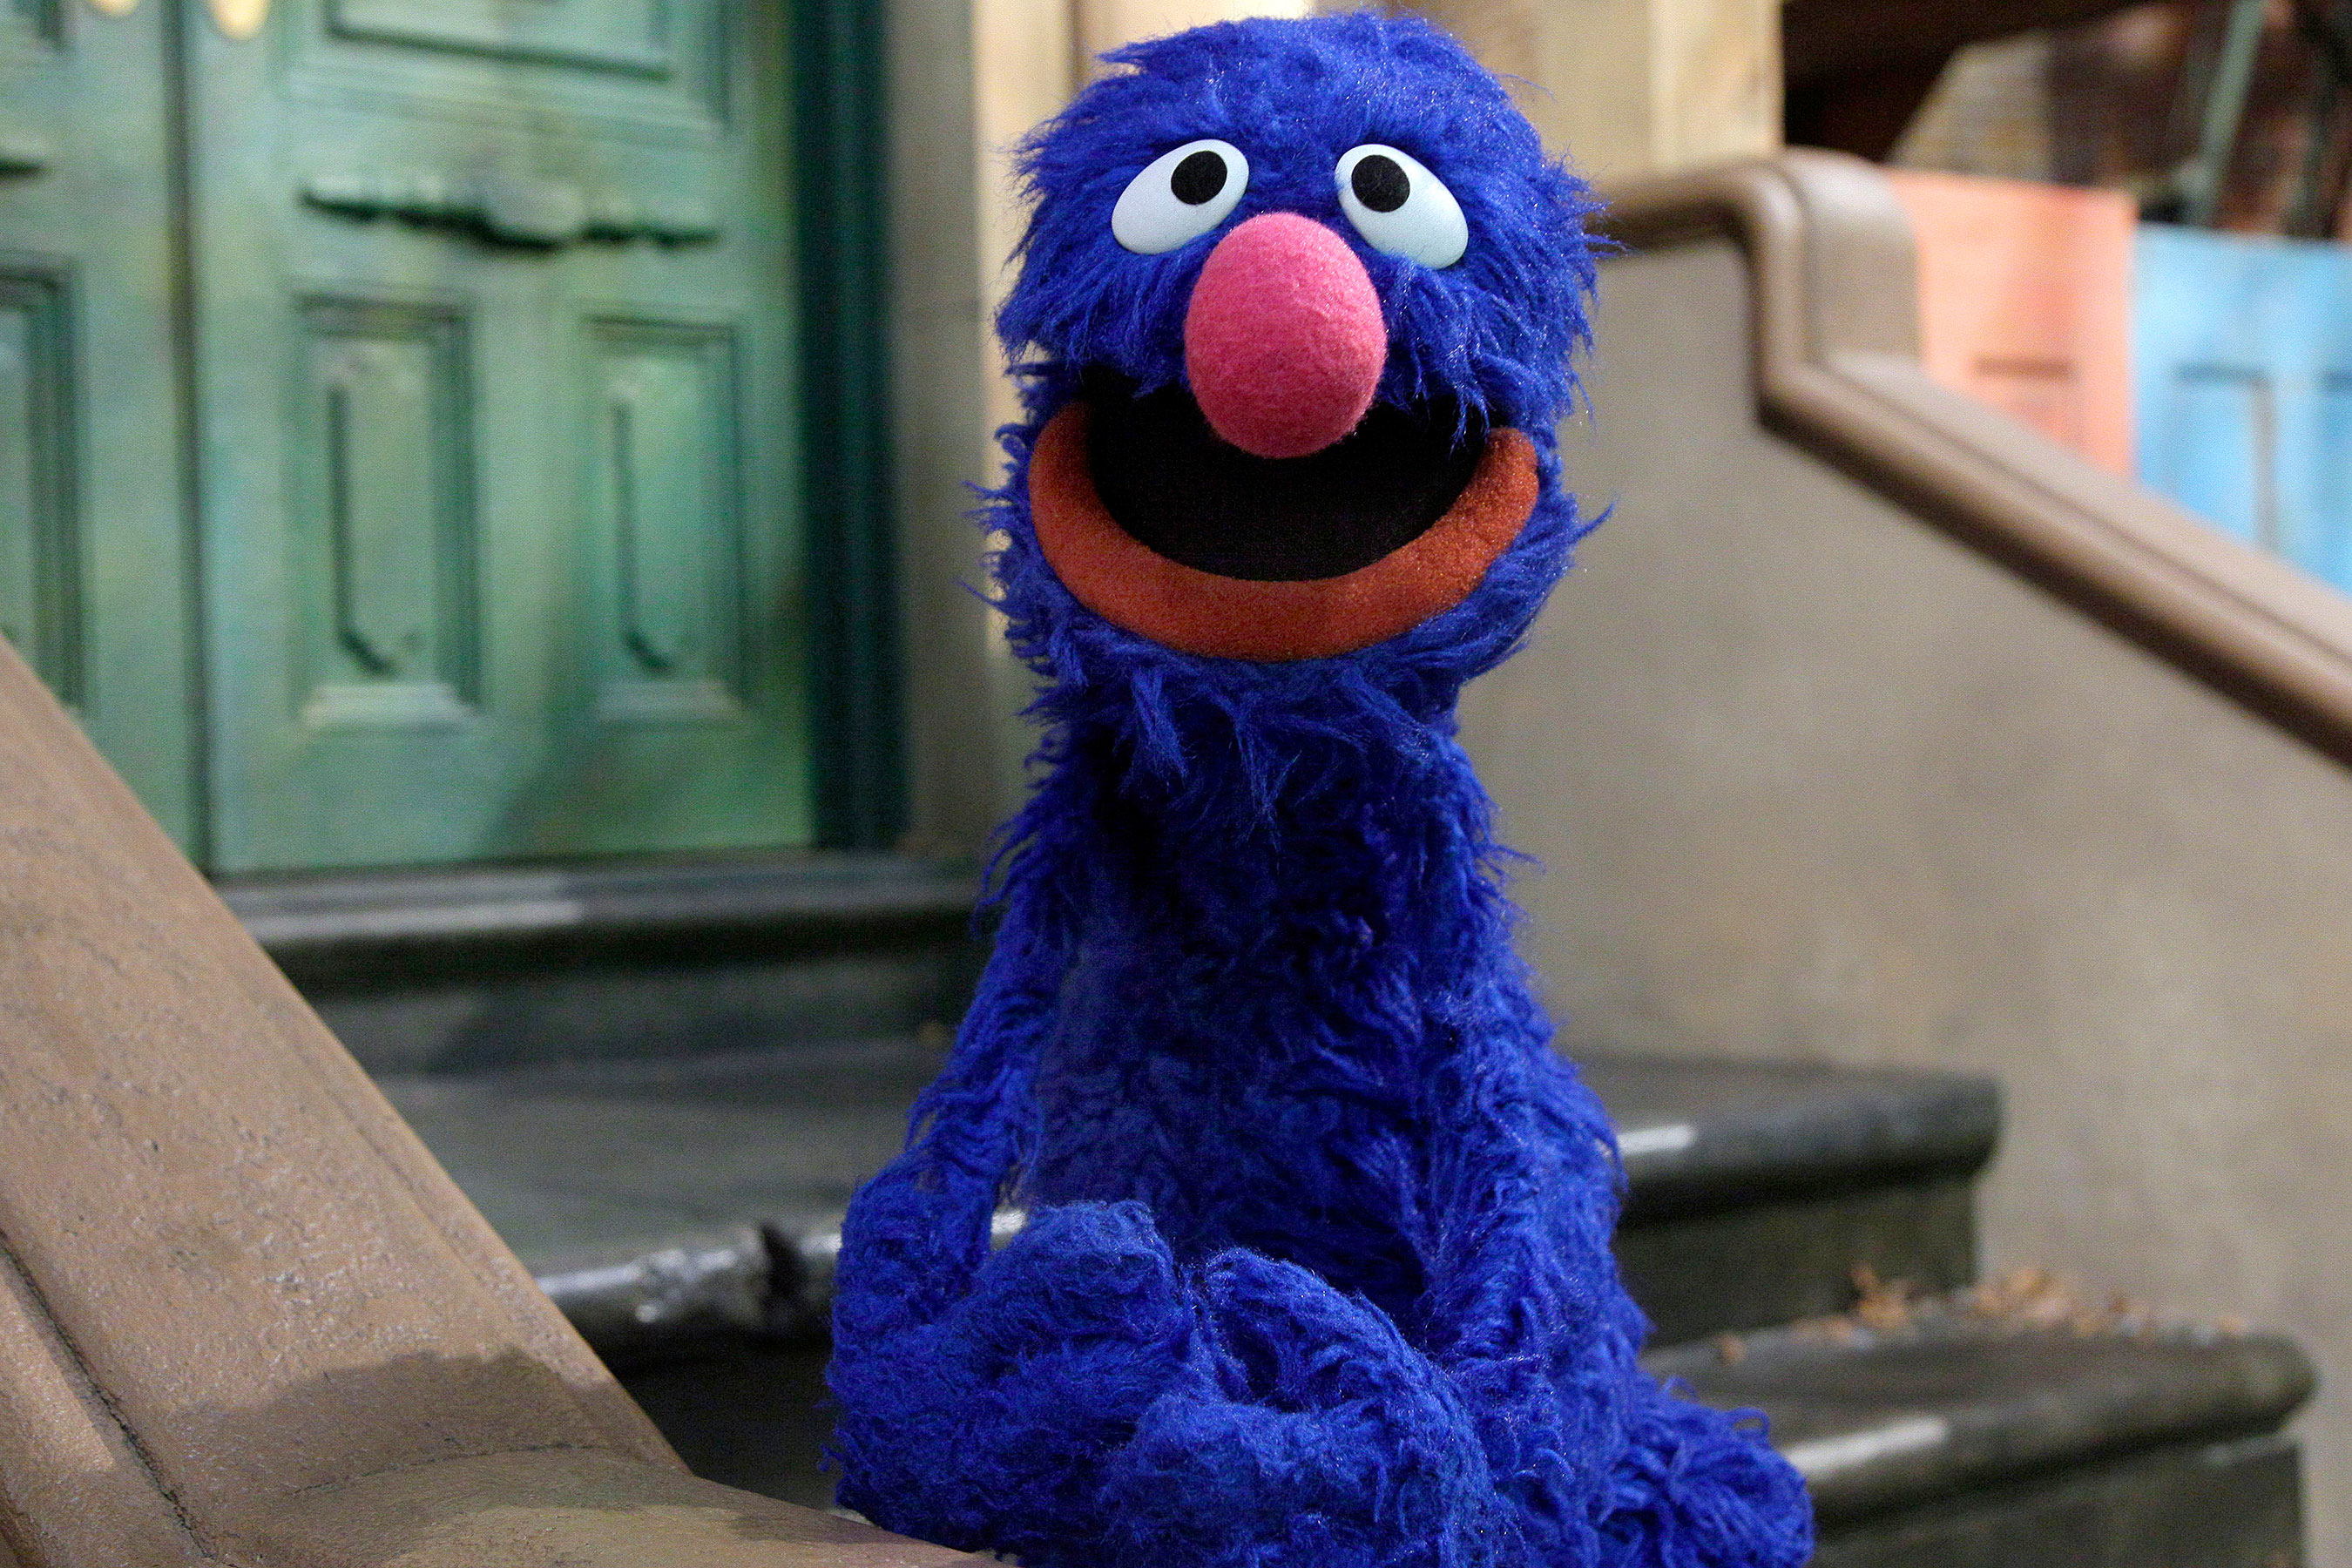 Sesame Street fans convinced Grover just dropped an f-bomb 9